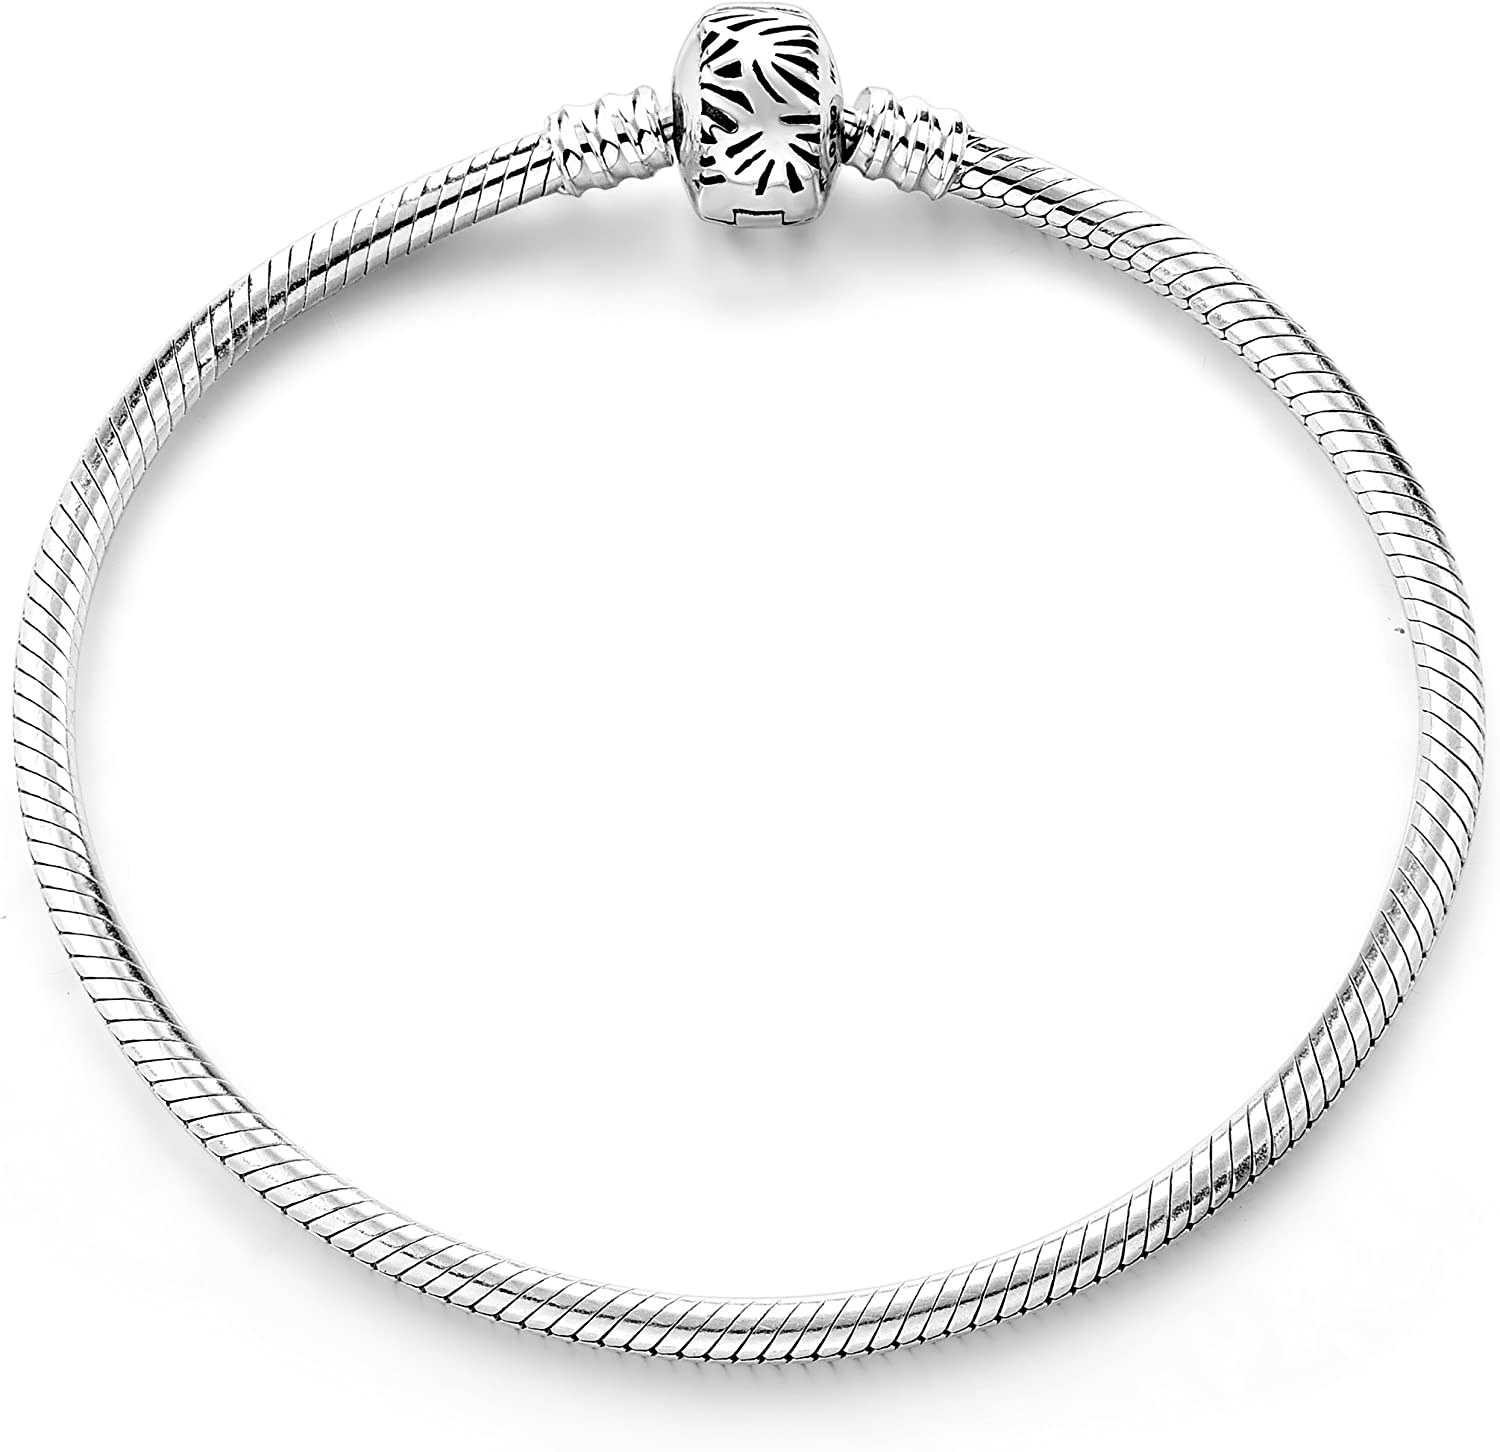 7.9 925 Sterling Silver Bracelet Snake Chain 3mm Fits European Brand Charms Beads